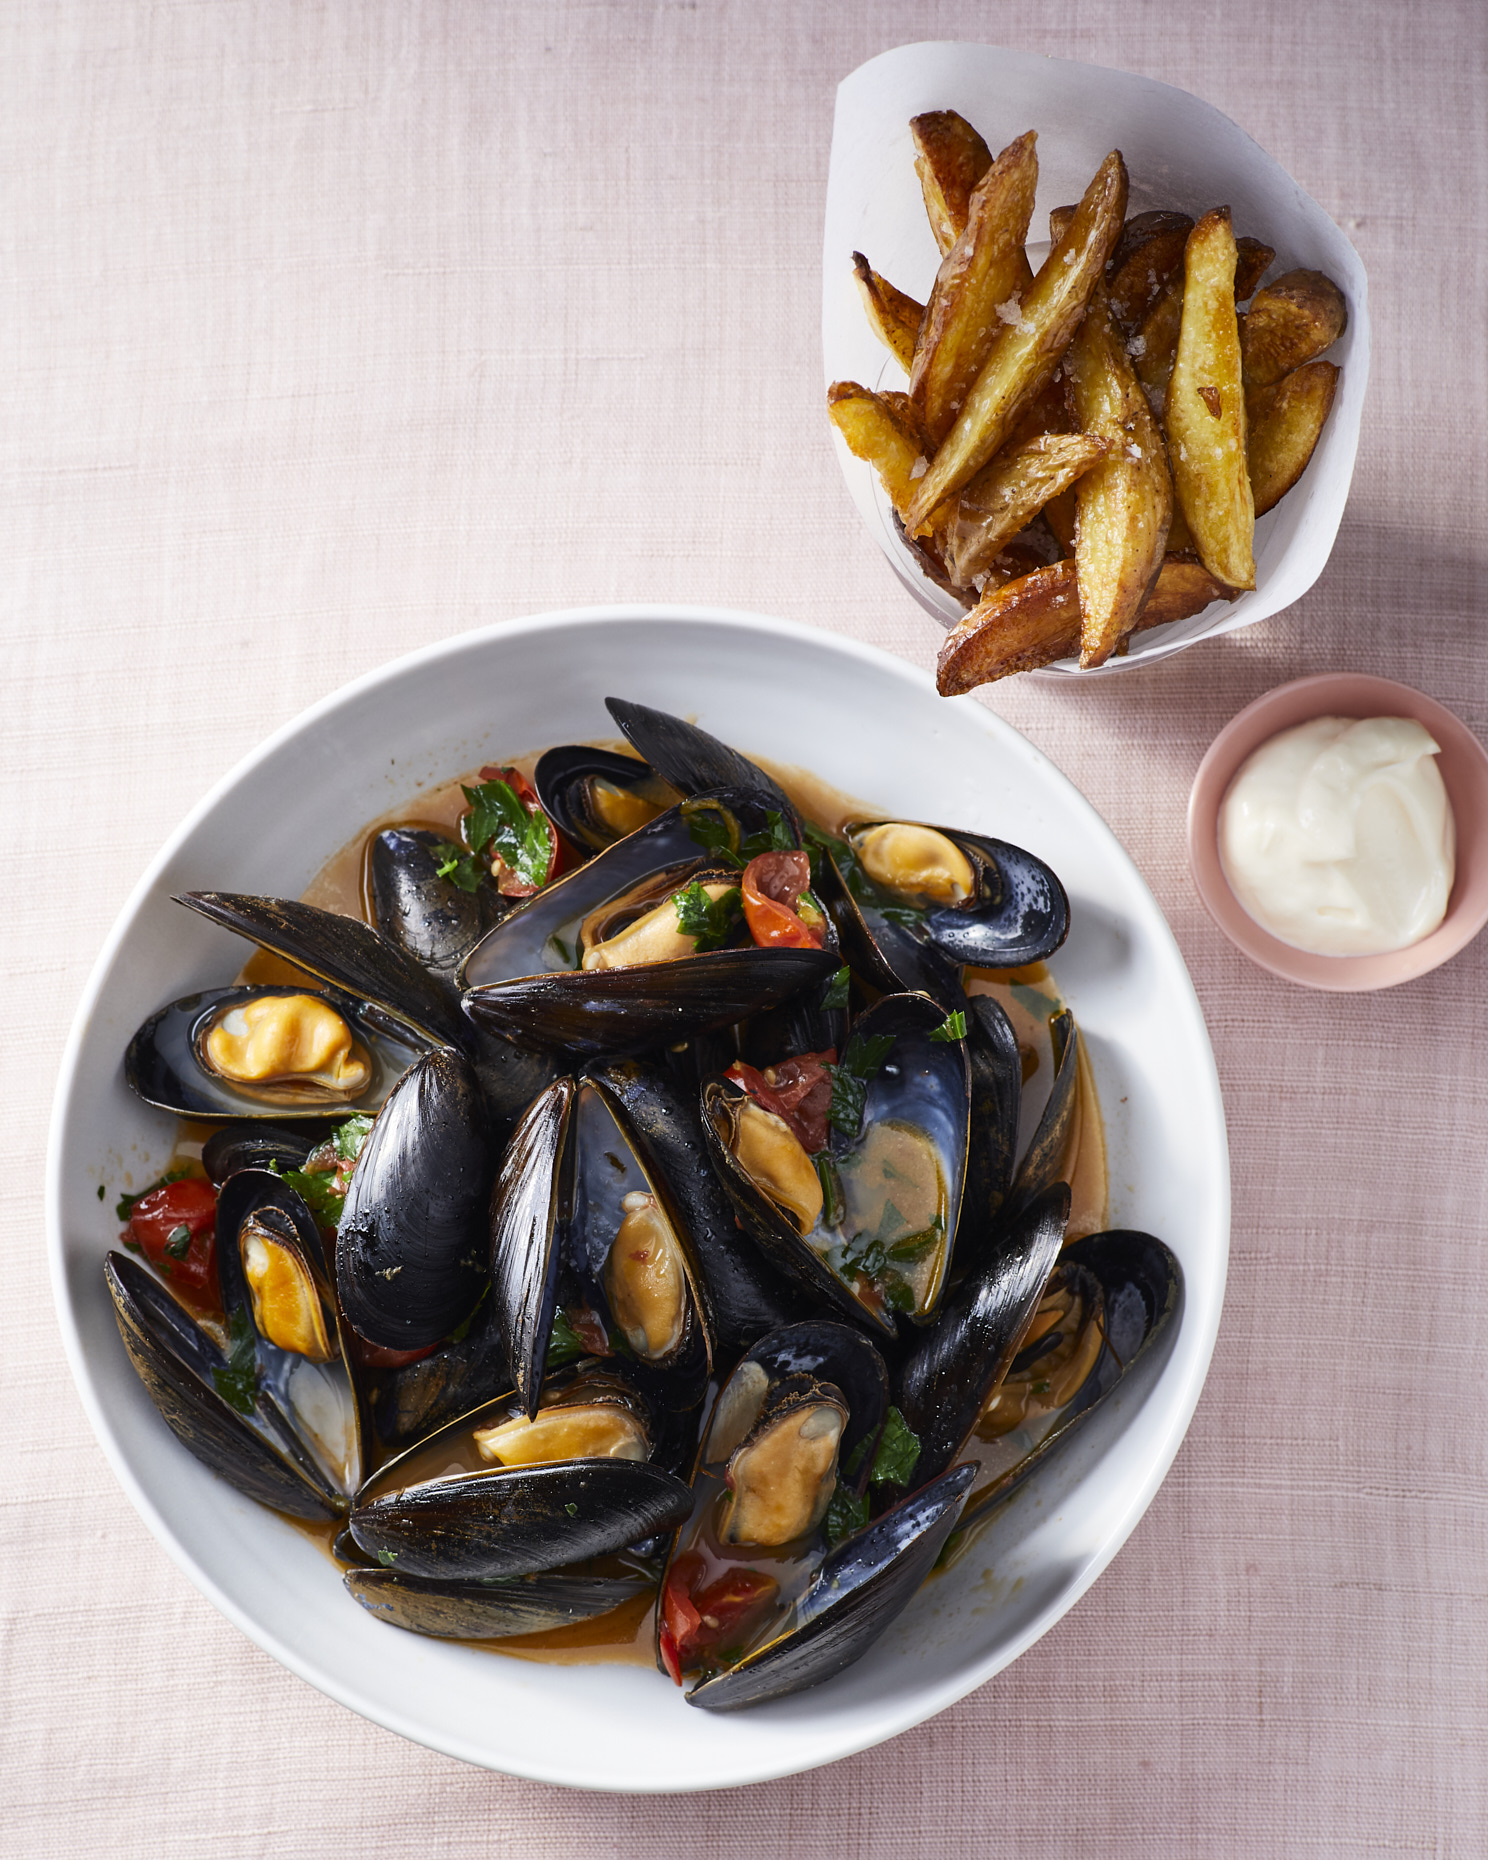 Brothy-Mussels-Oven-Frites-V2-027-JF-6409899